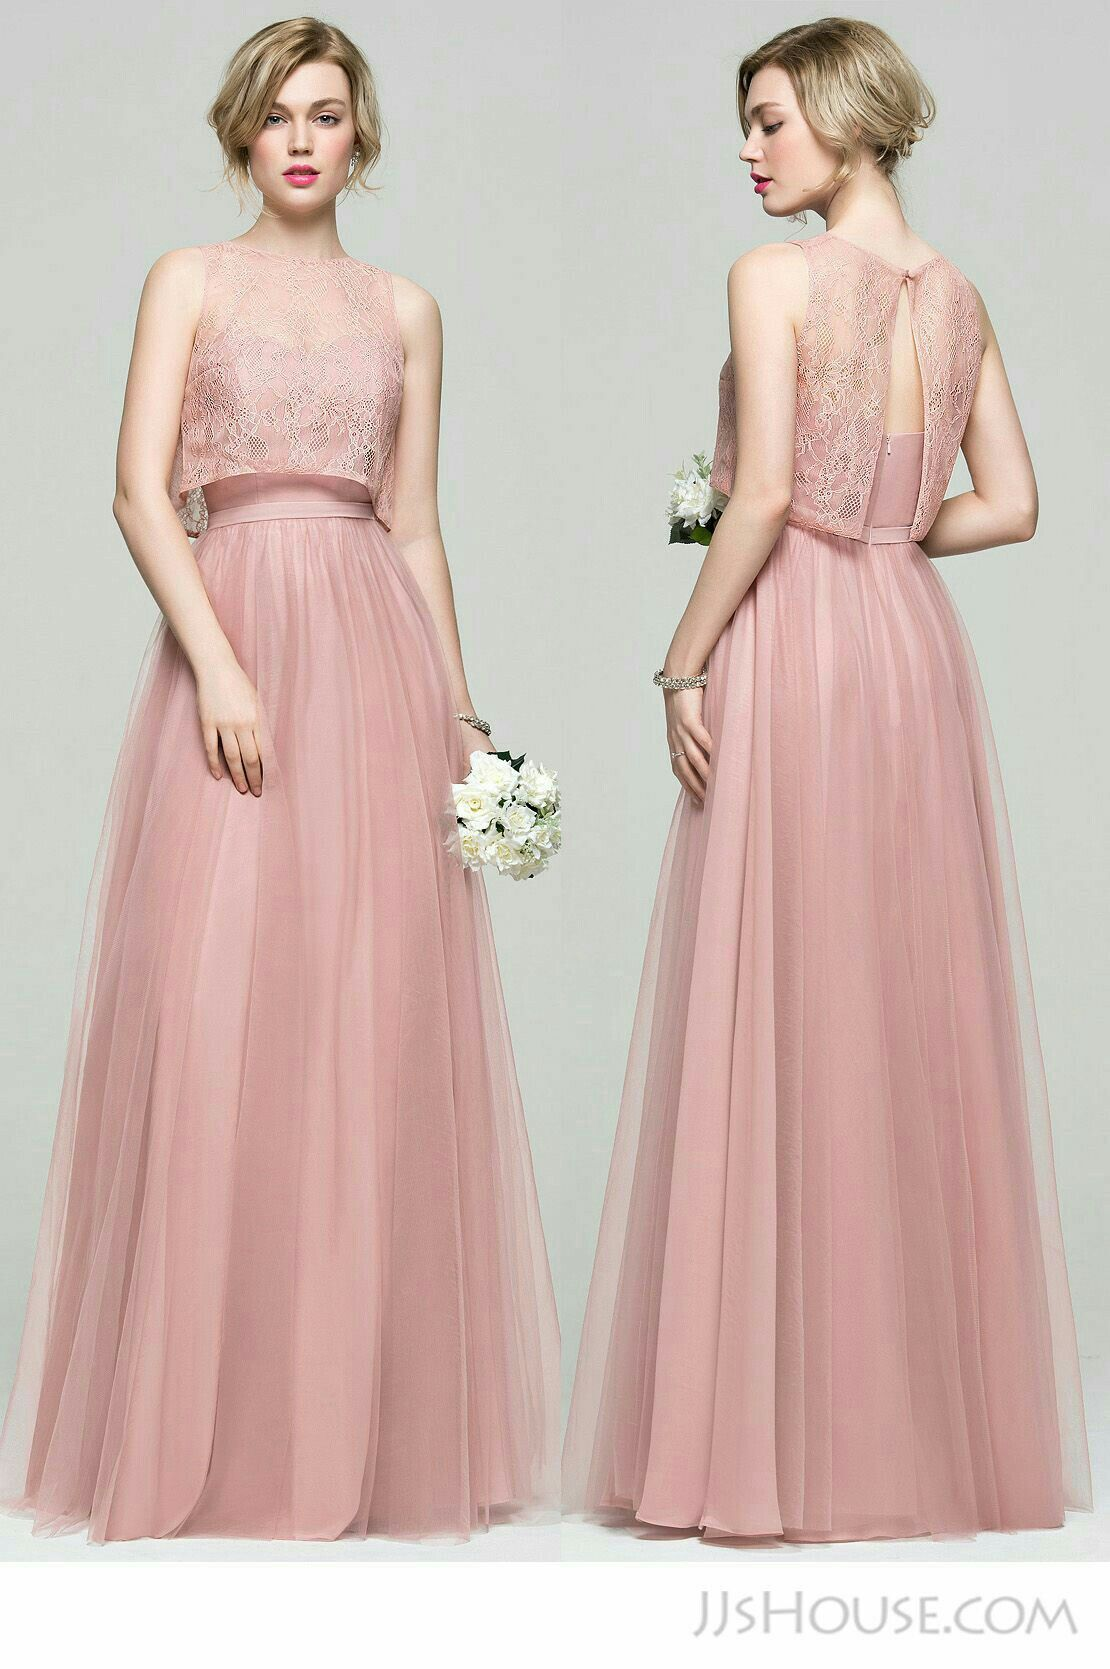 Pin de Lori Anne en bridesmaids | Pinterest | Vestiditos, Vestidos ...